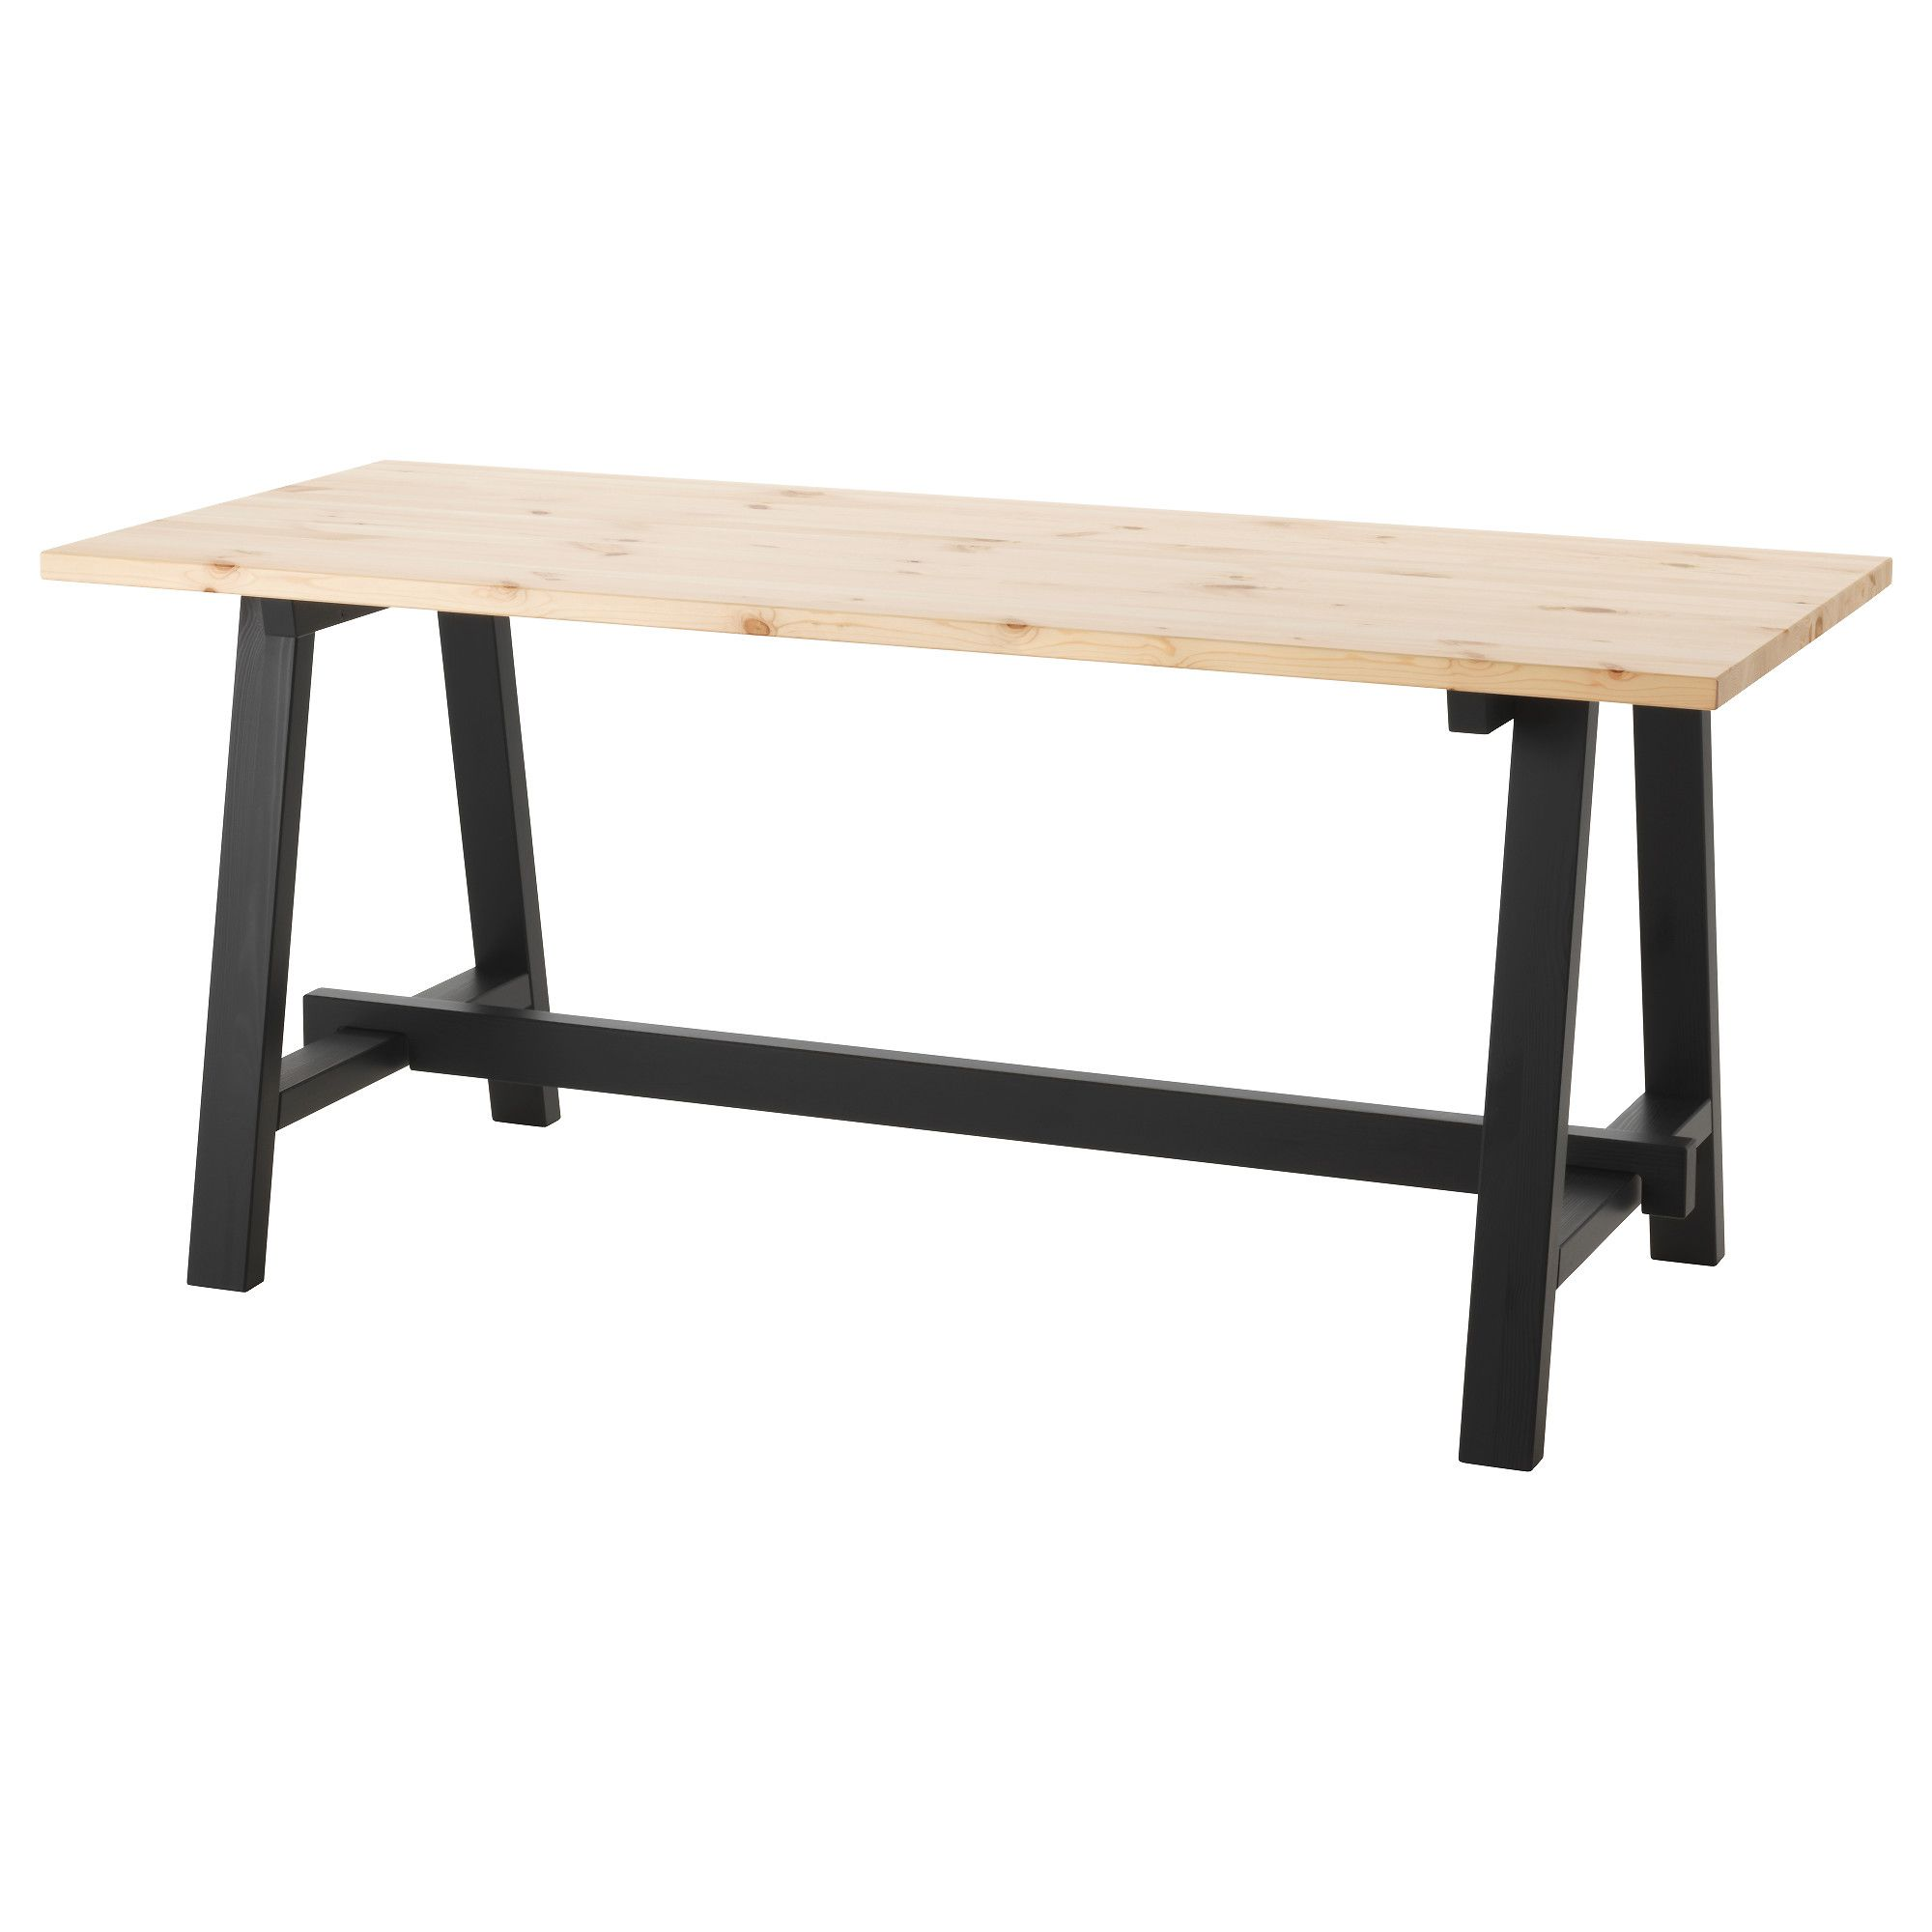 Ikea Us Furniture And Home Furnishings Dining Table Black